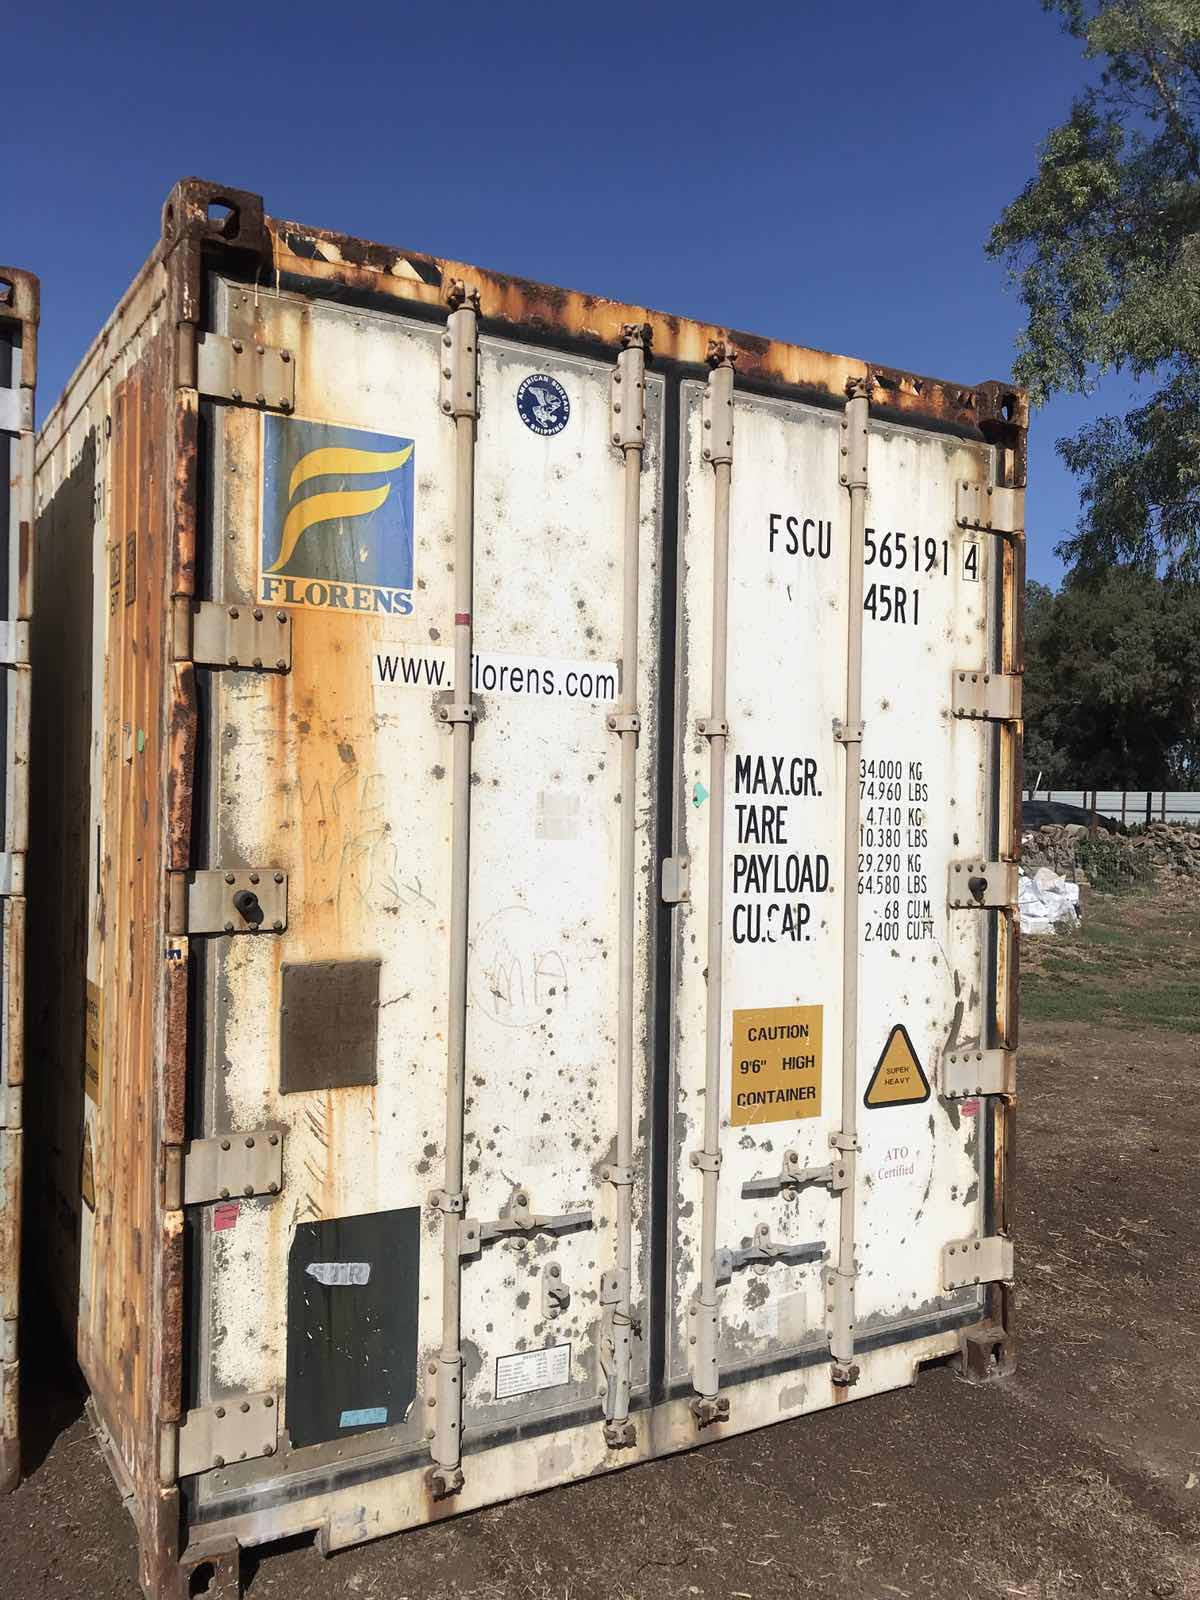 Wind water tight (WWT) shipping container